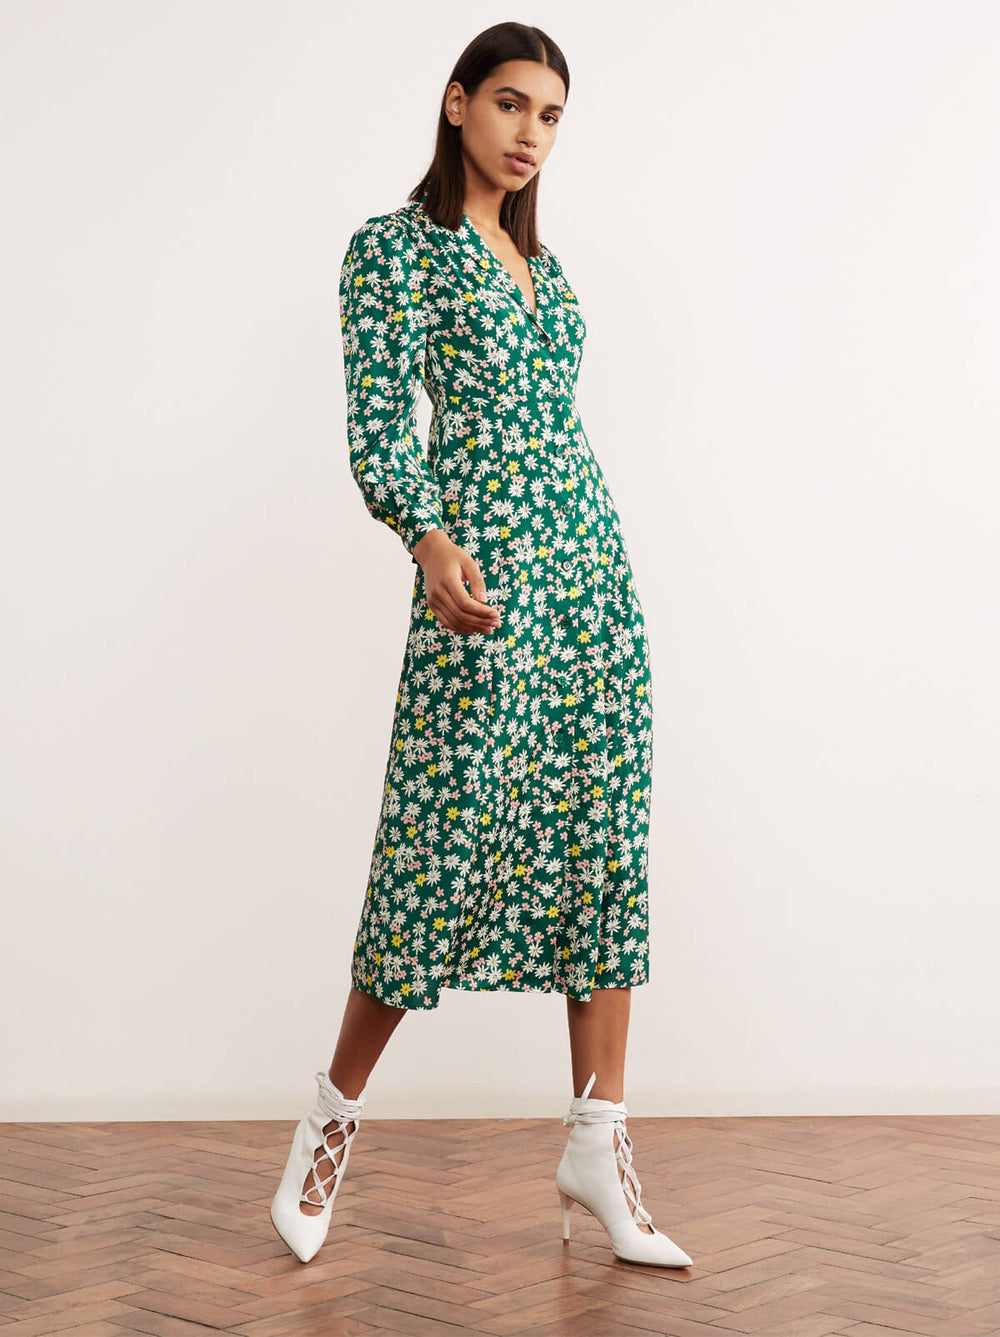 Maude Floral Print Long Sleeve Midi Tea Dress by KITRI Studio